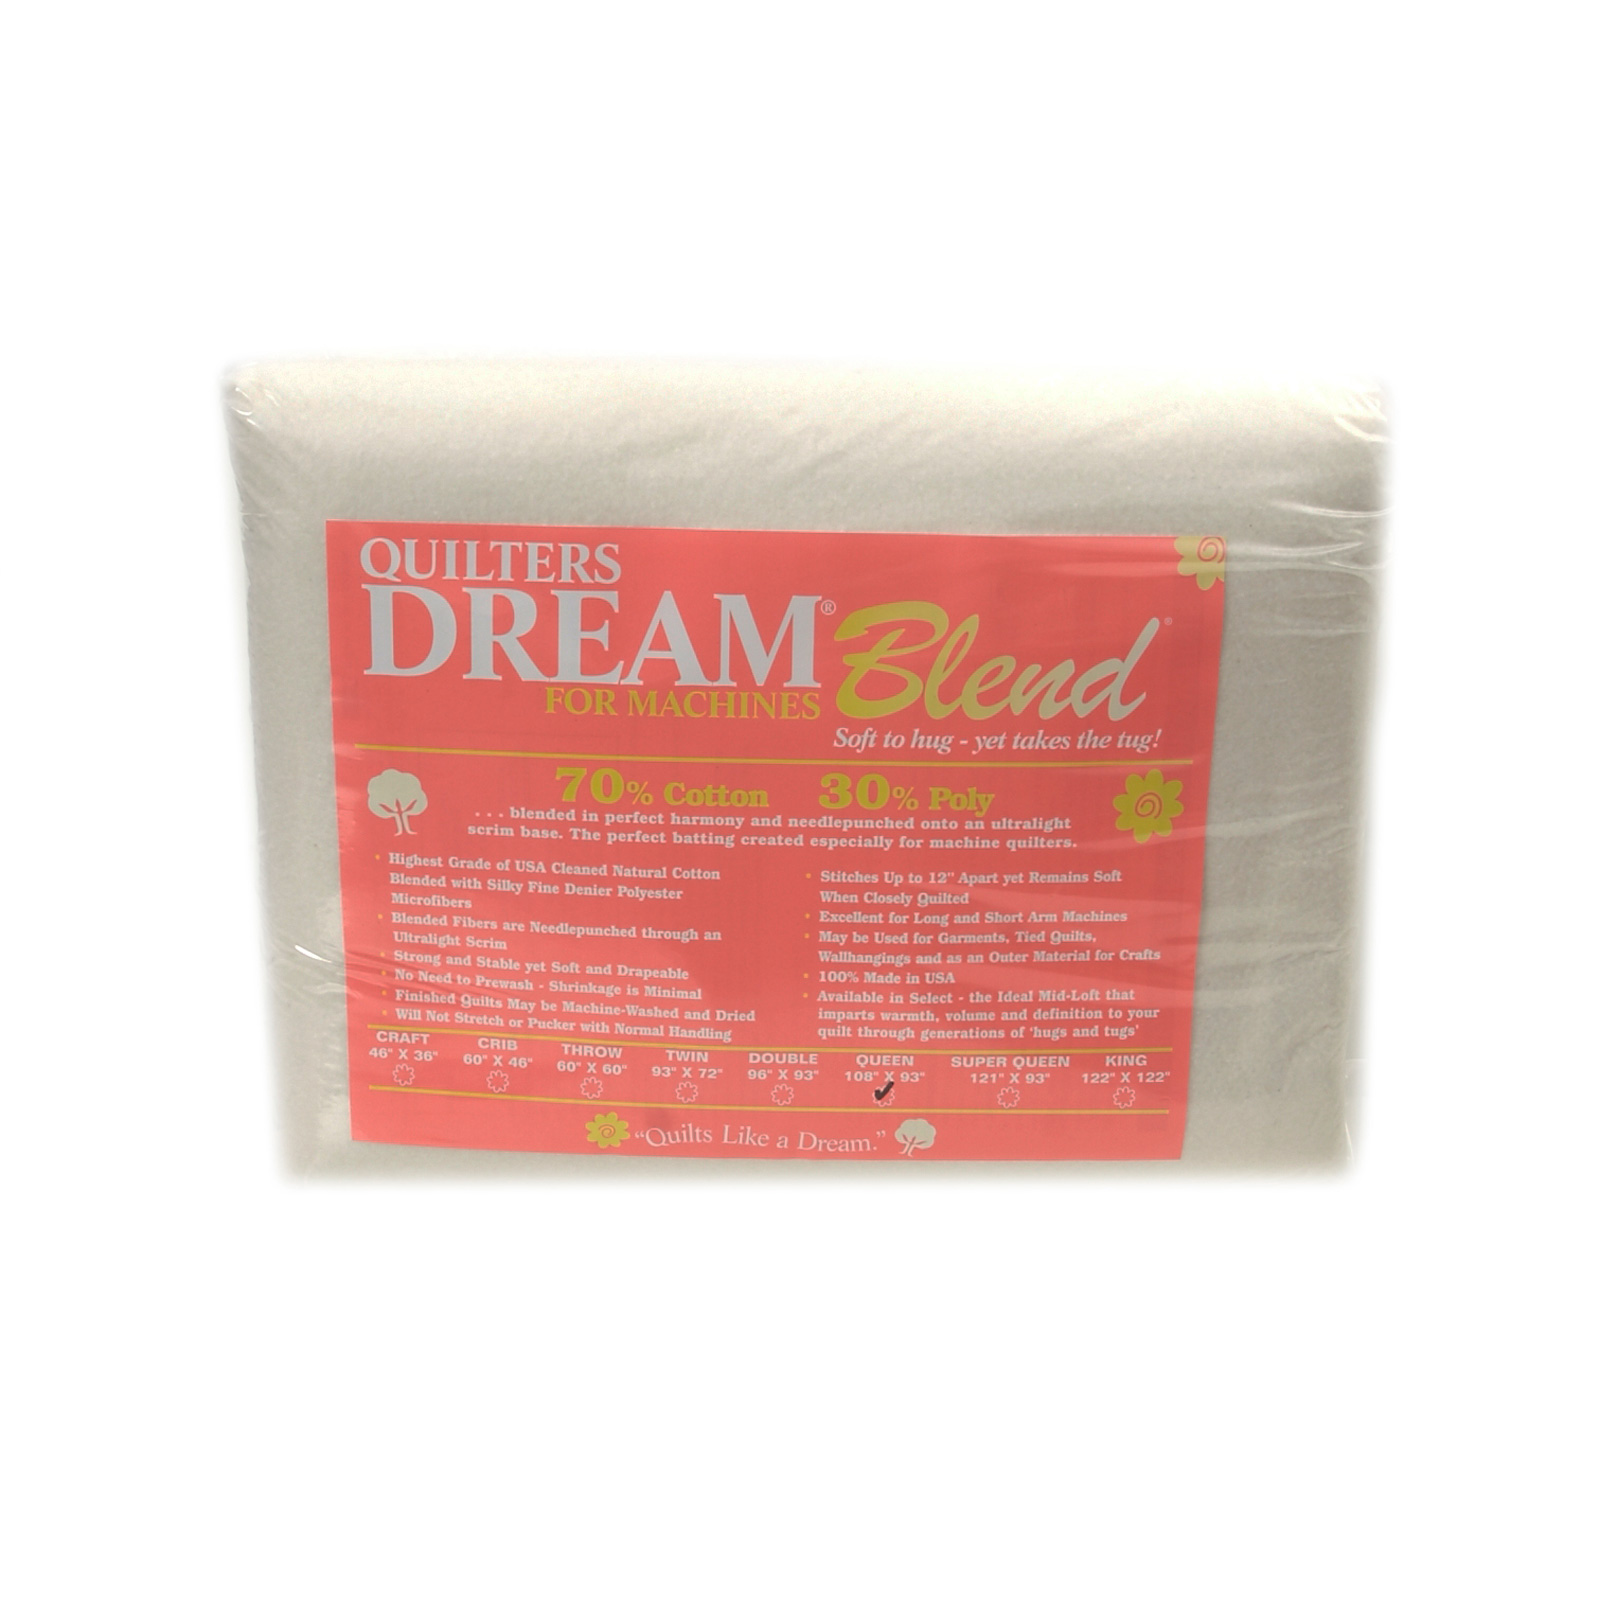 Quilter's Dream Blend (108'' x 93'') Queen by Quilter's Dream in USA